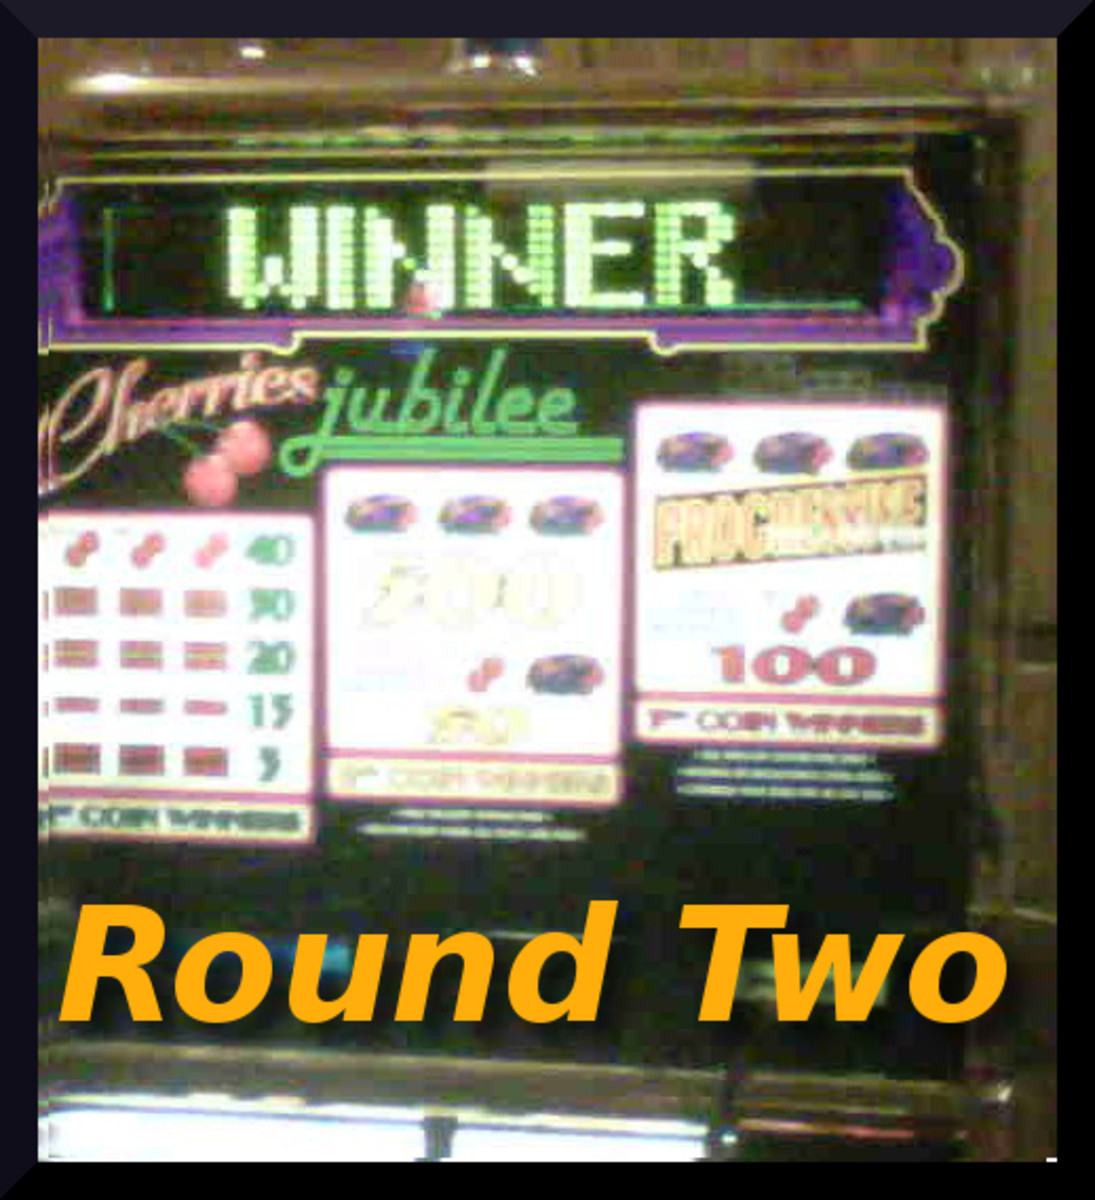 Best way to win on slot machines in vegas card game casino royale